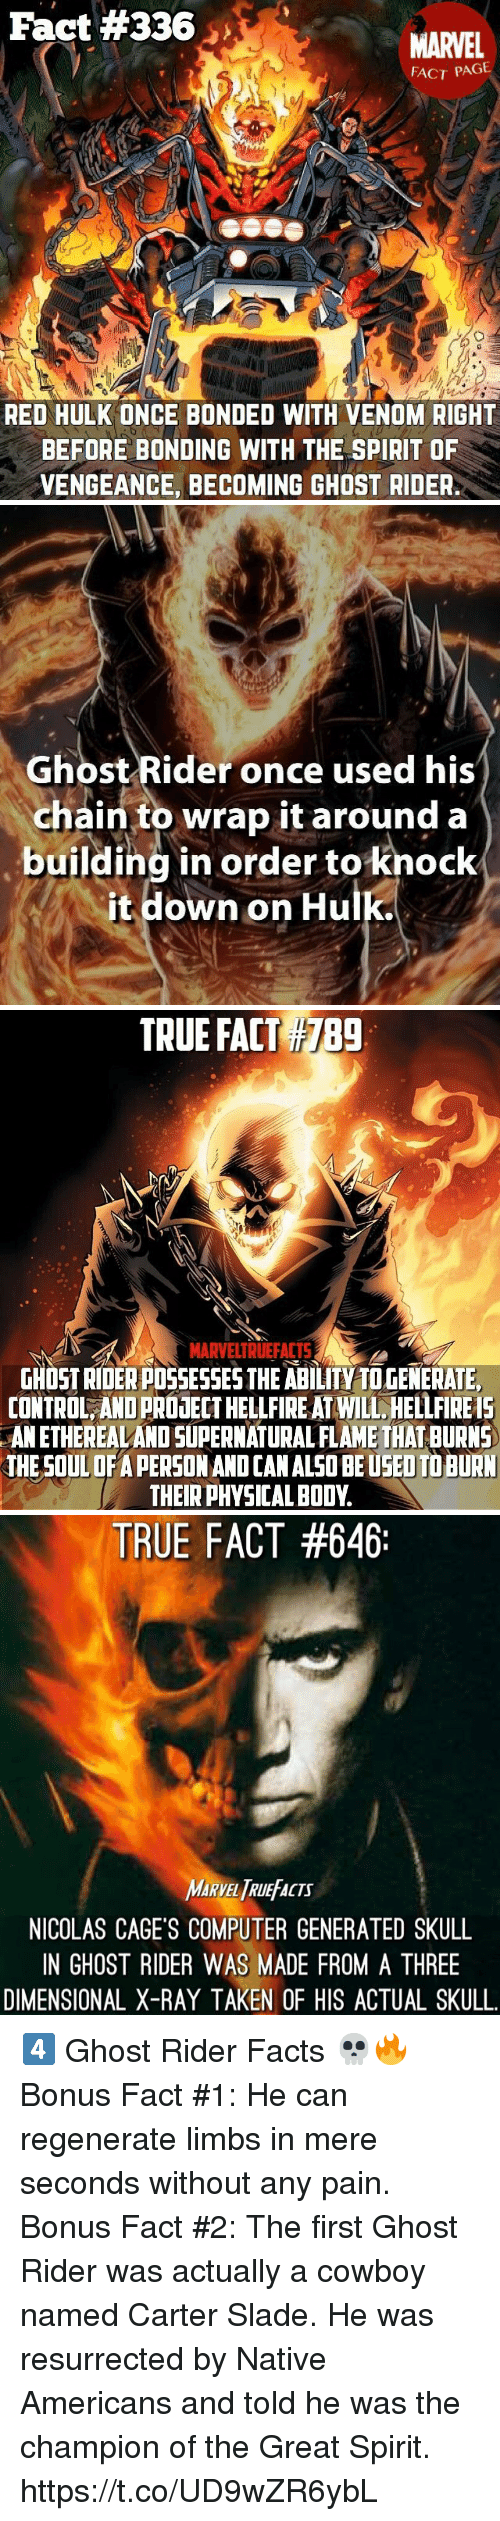 Fact #336 MARVEL FACT PAGE RED HULK ONCE BONDED WITH VENOM RIGHT